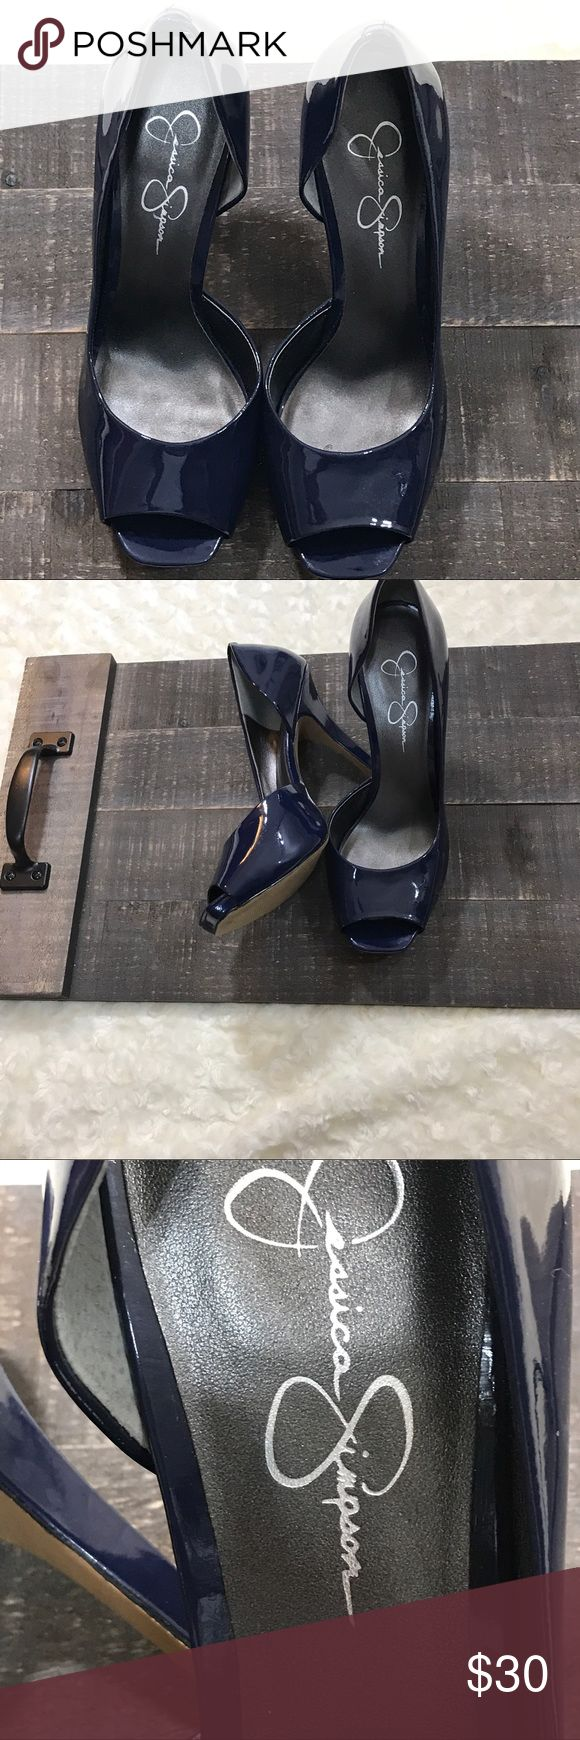 """Jessica Simpson Womens Blue Patent Leather Shoes Jessica Simpson Womens Blue Patent Leather Peep Toe Heels -- see pictures for details  NO SIZE listed**  insole - 9.5"""" heel height - 4"""" Jessica Simpson Shoes Heels"""